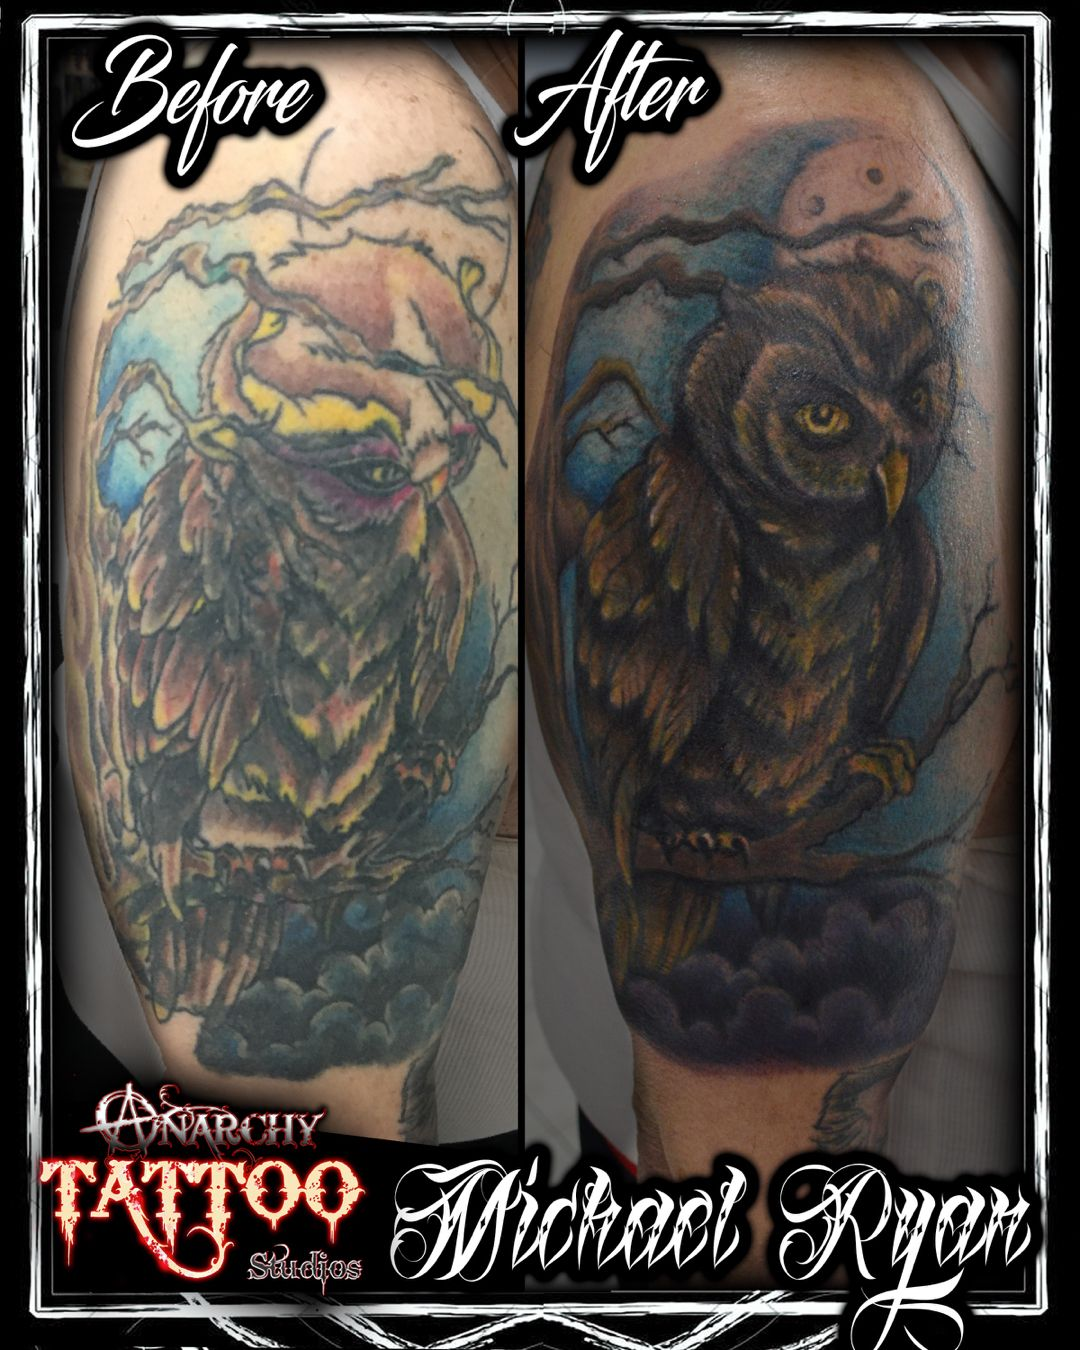 Check out this major fixupcoverup by resident artist